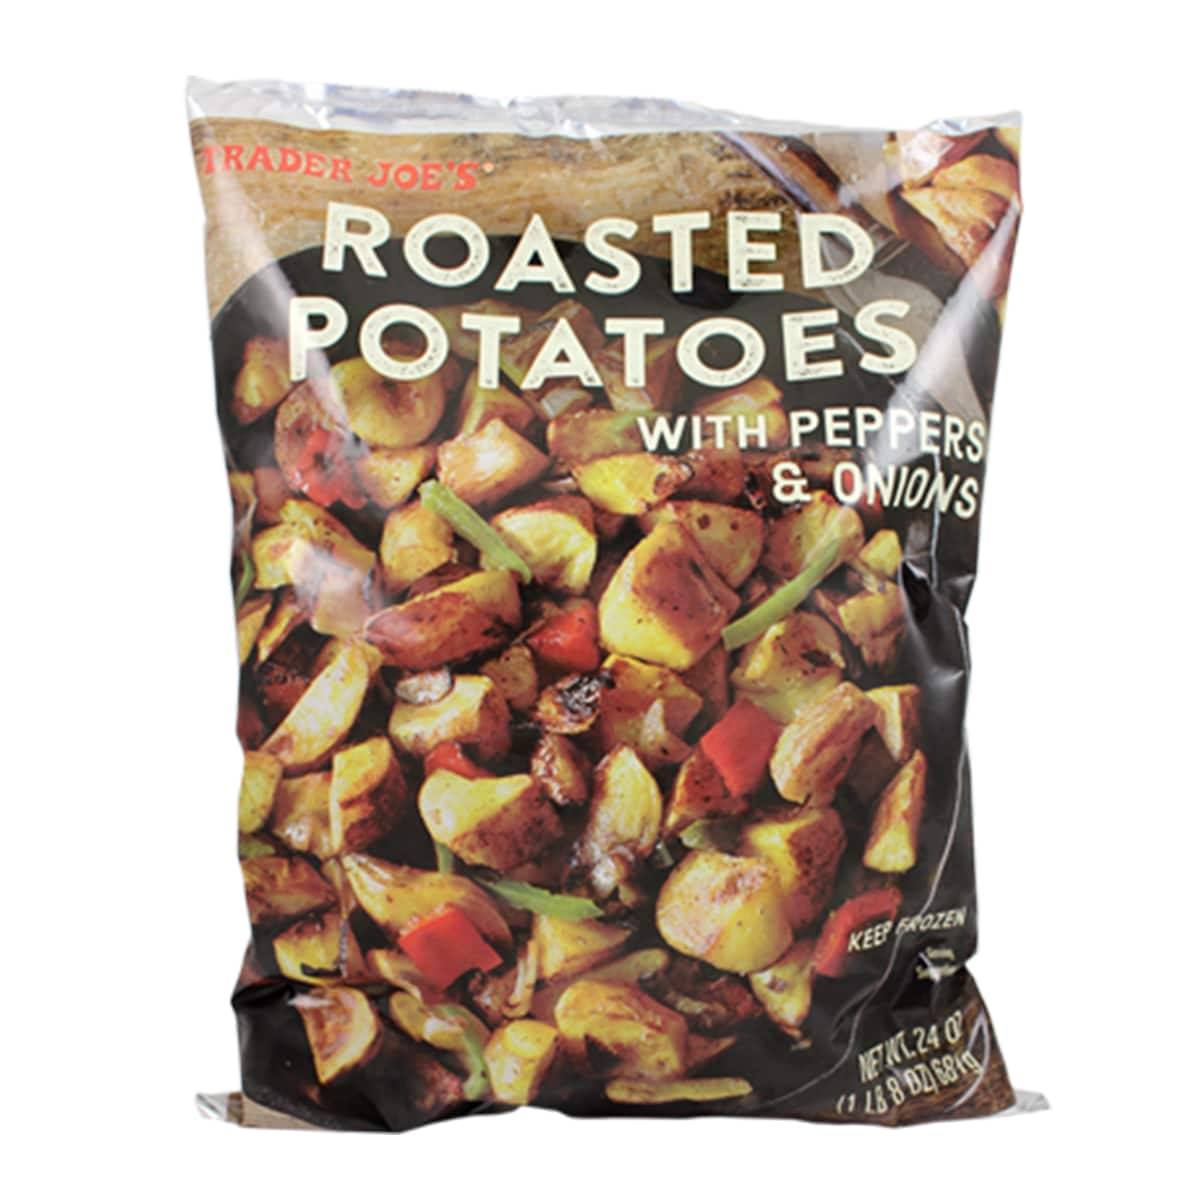 10 Frozen Foods I Buy at Trader Joe's for Easier Weeknight Dinners: gallery image 4